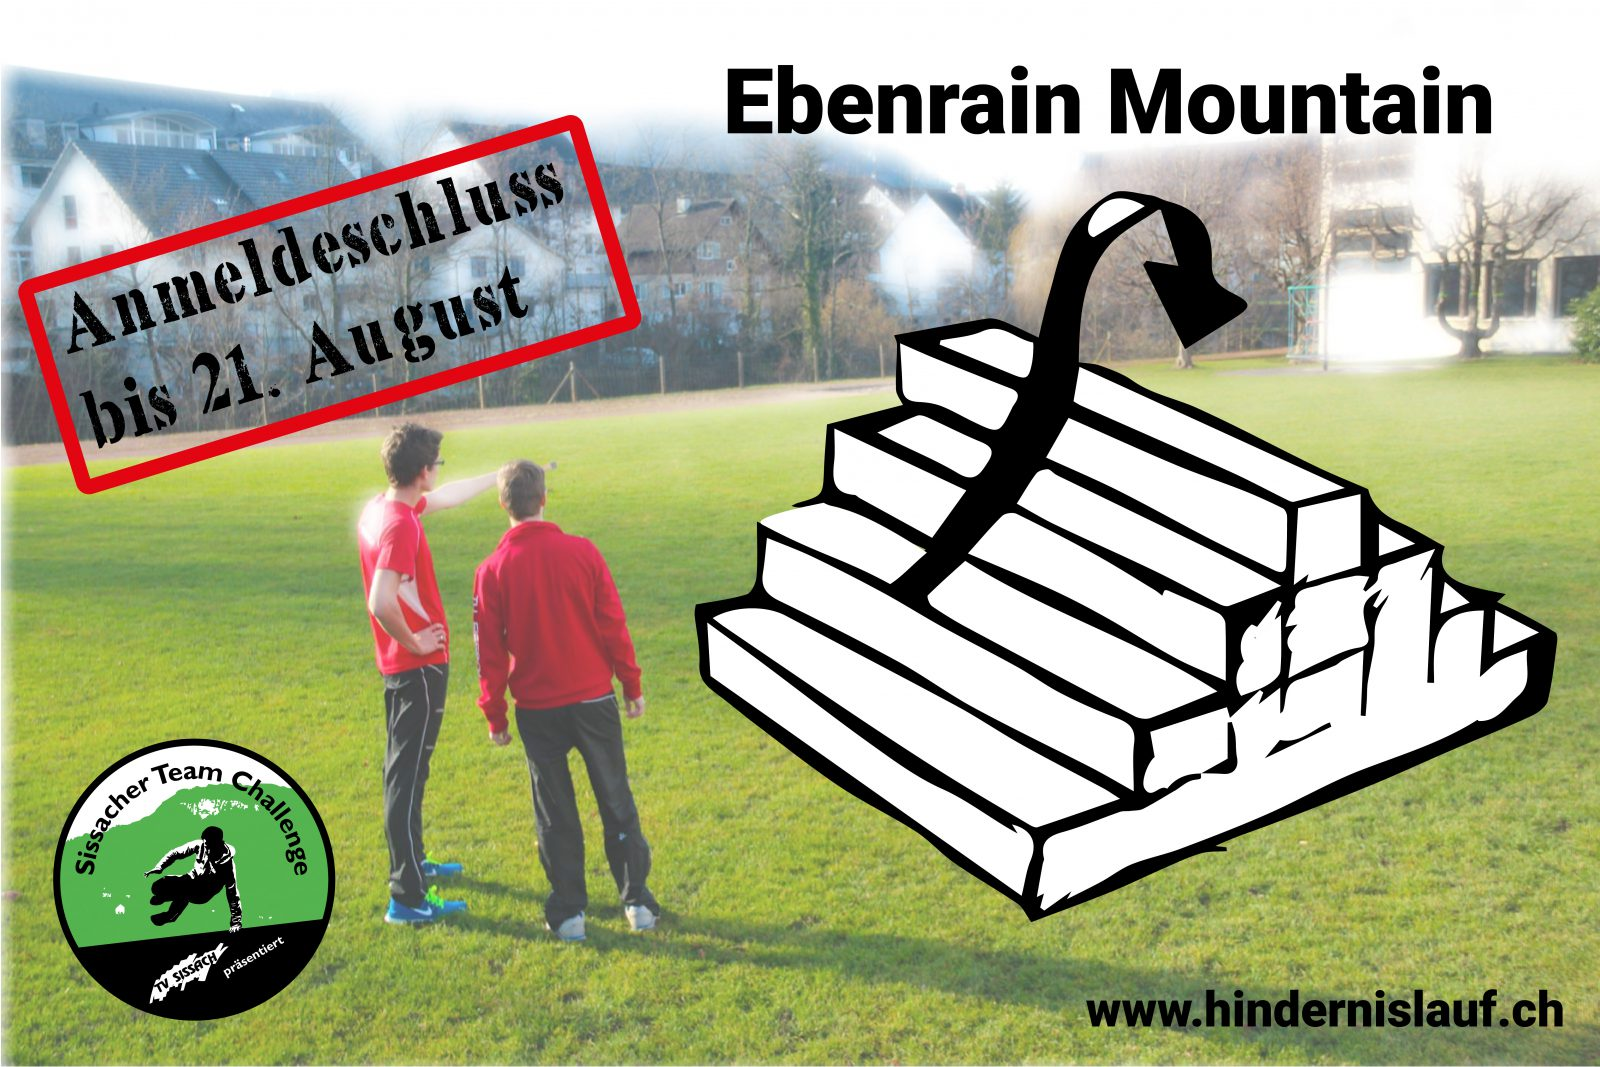 Ebenrain Mountain